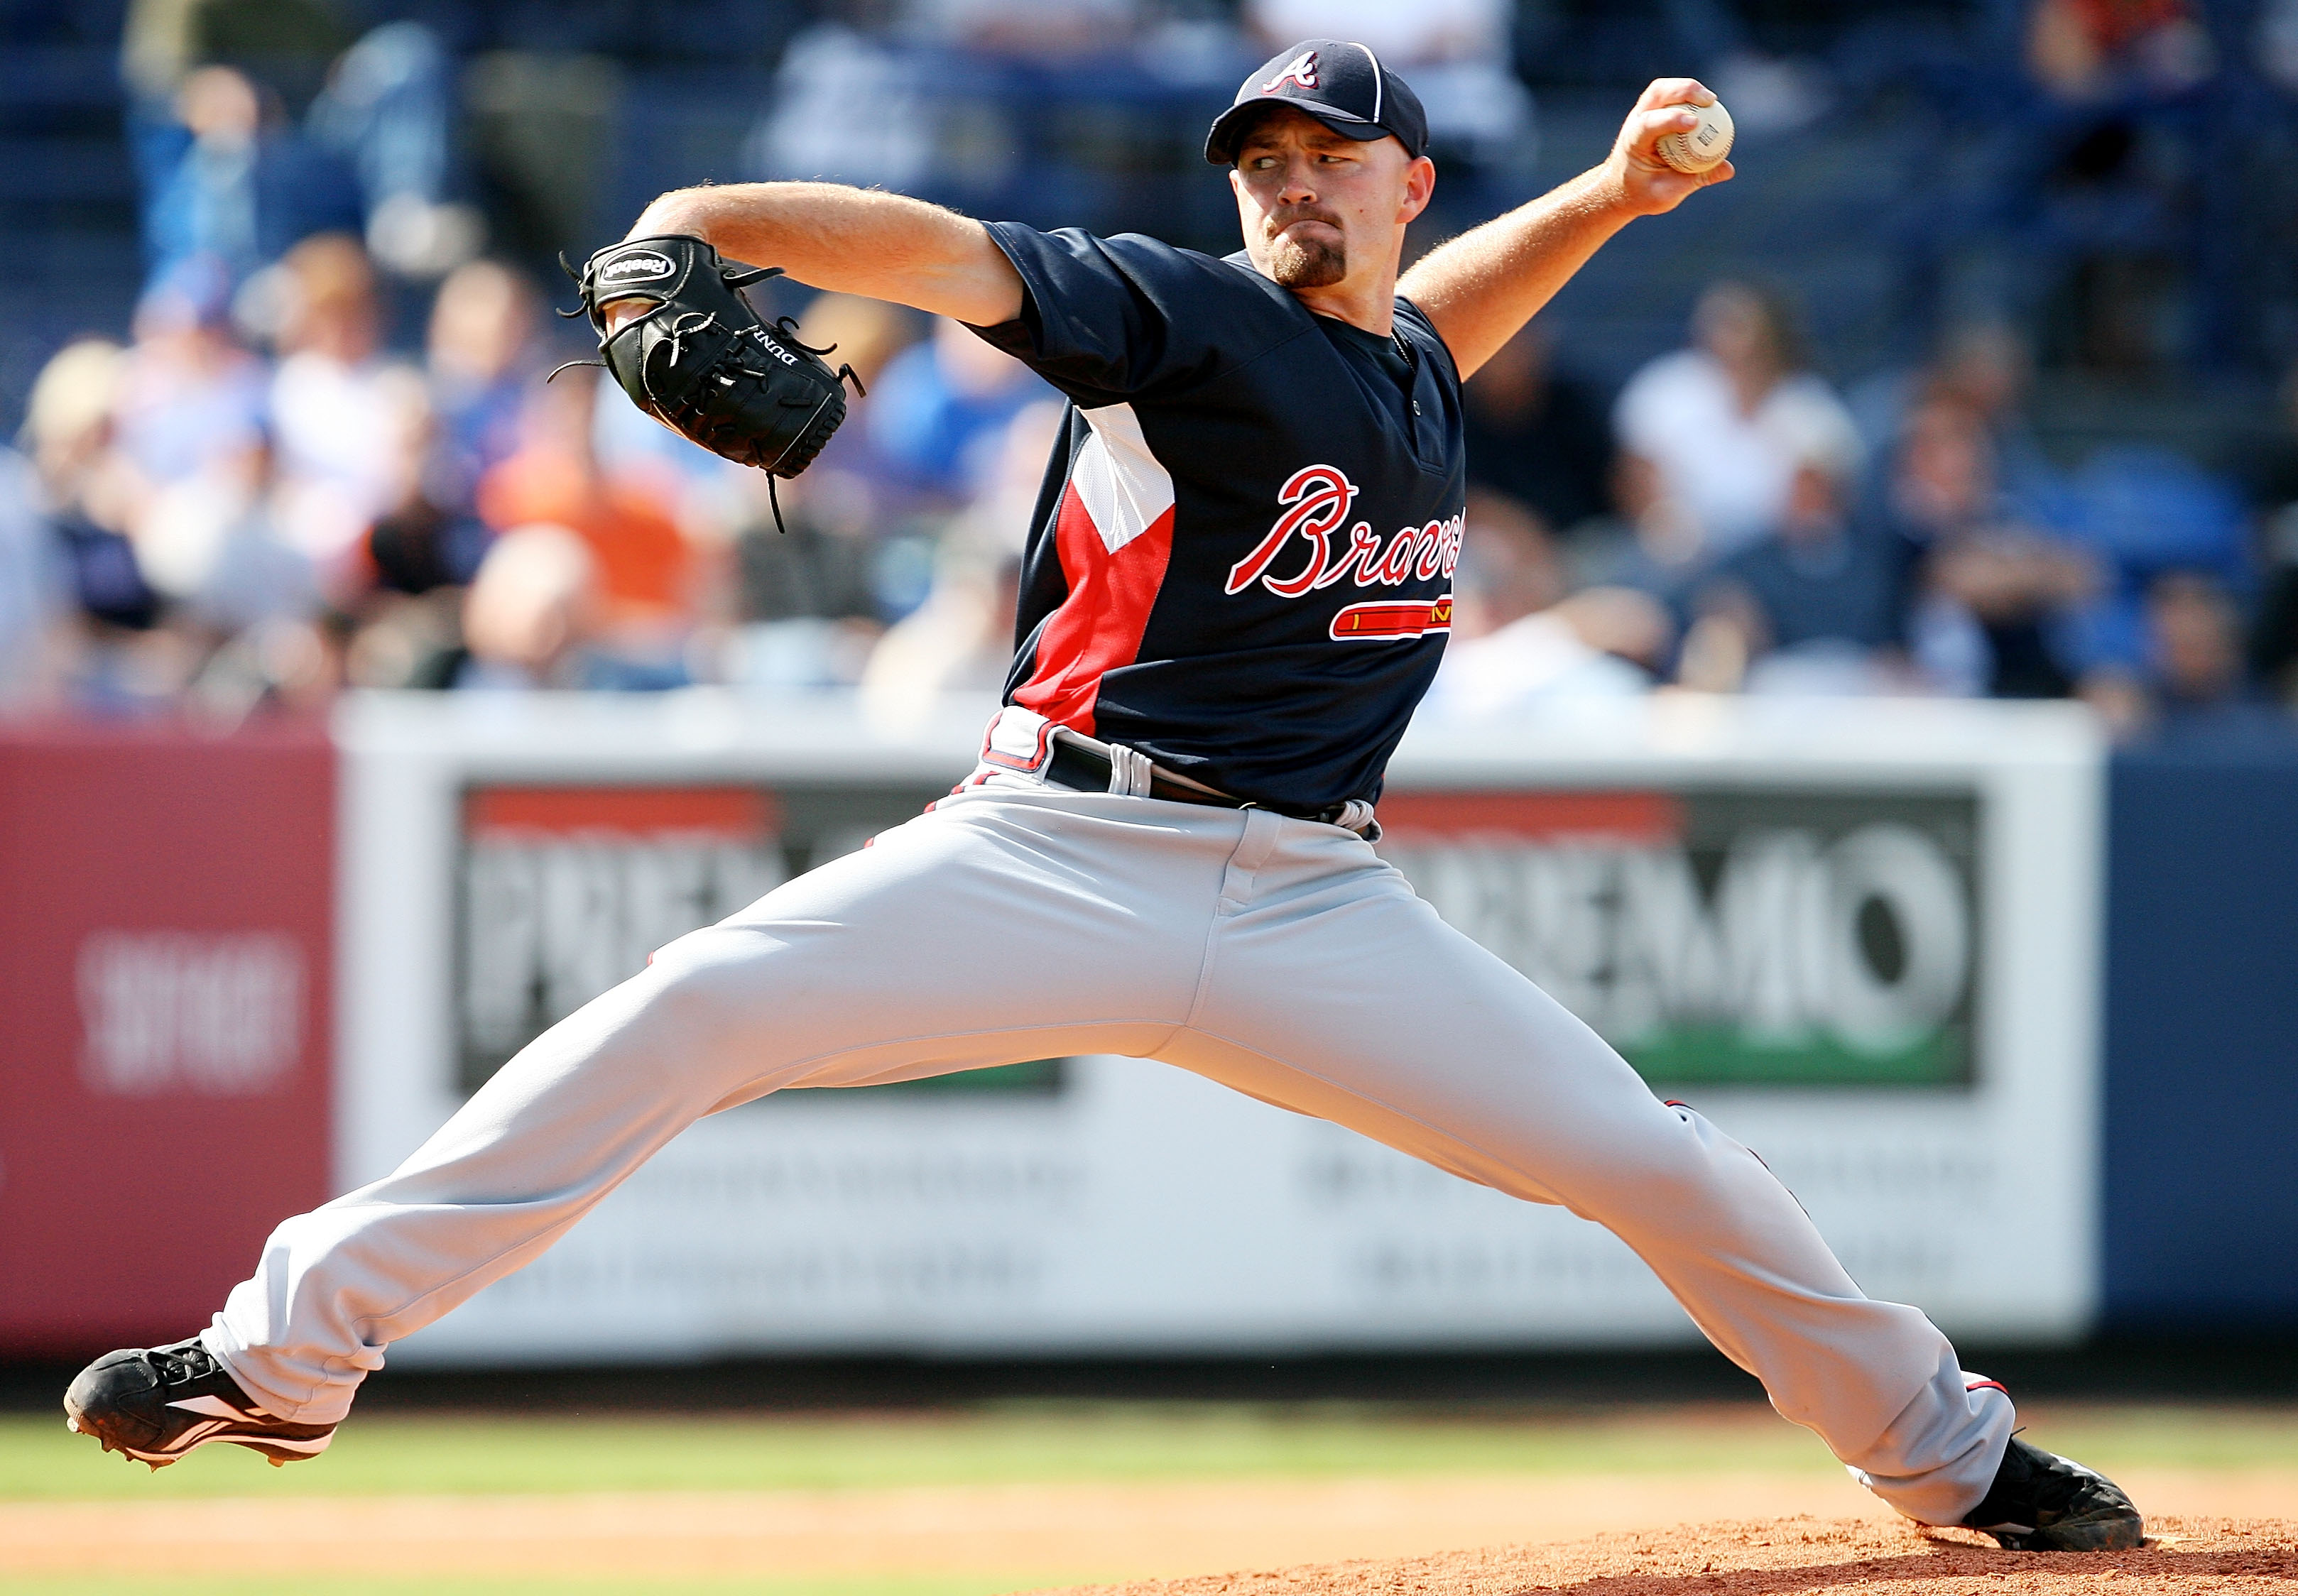 PORT ST. LUCIE, FL - MARCH 02:  Pitcher Mike Dunn #38 of the Atlanta Braves pitches against the New York Mets during a spring training game at Tradition Field on March 2, 2010 in Port St. Lucie, Florida.  (Photo by Doug Benc/Getty Images)